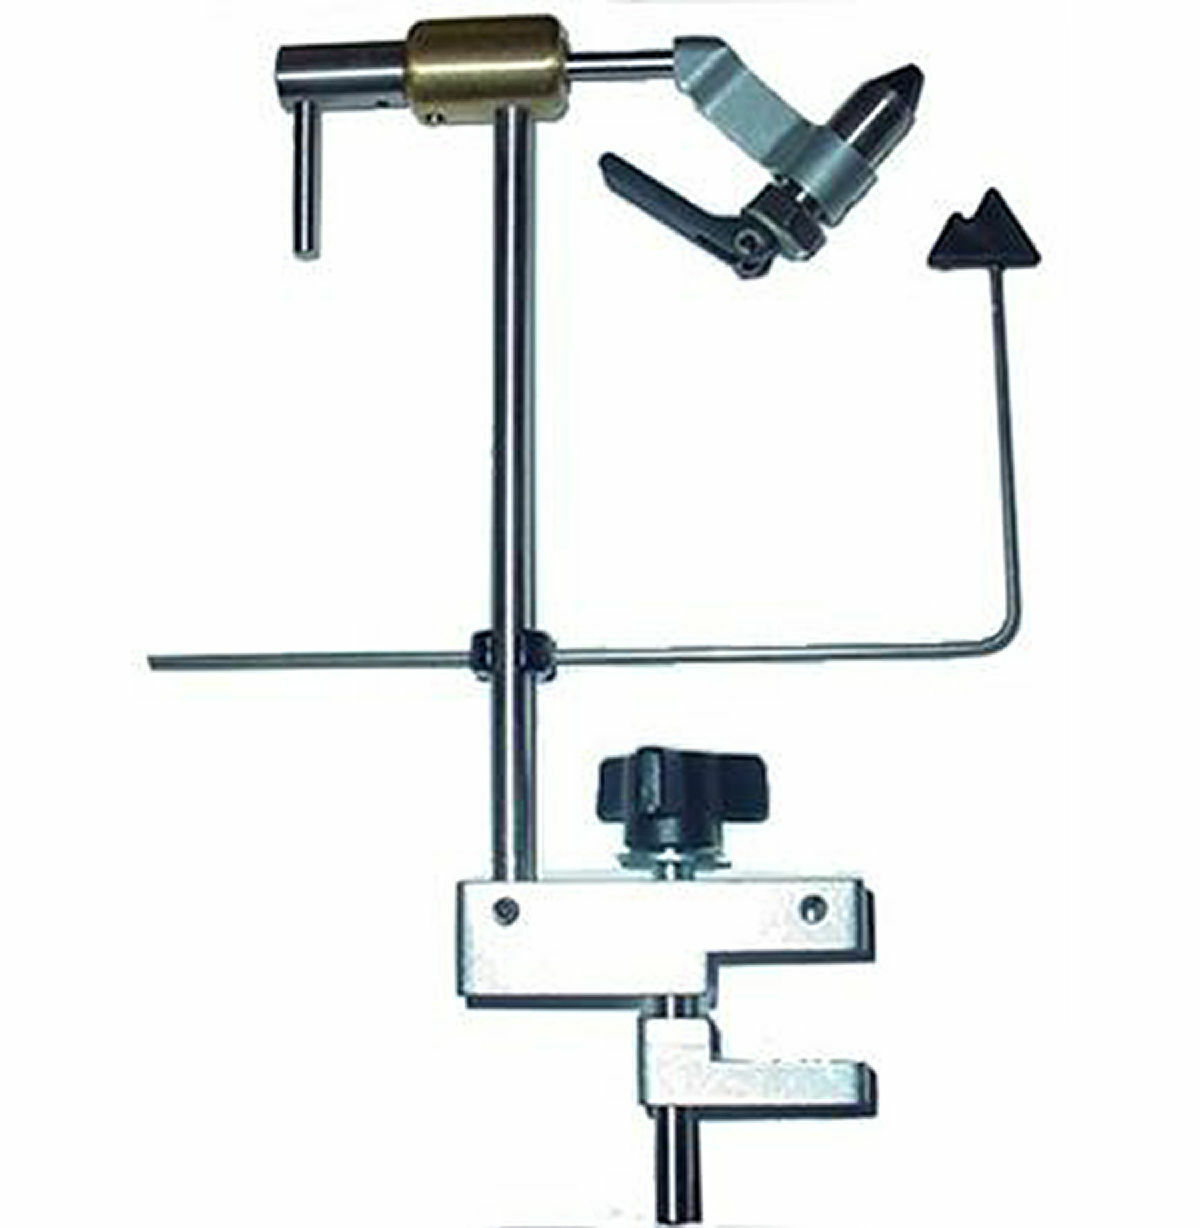 NEW PEAK  TRUE redARY FLY TYING VISE PRV-CI WITH C-CLAMP BASE USA MADE FREE SHIP  great selection & quick delivery